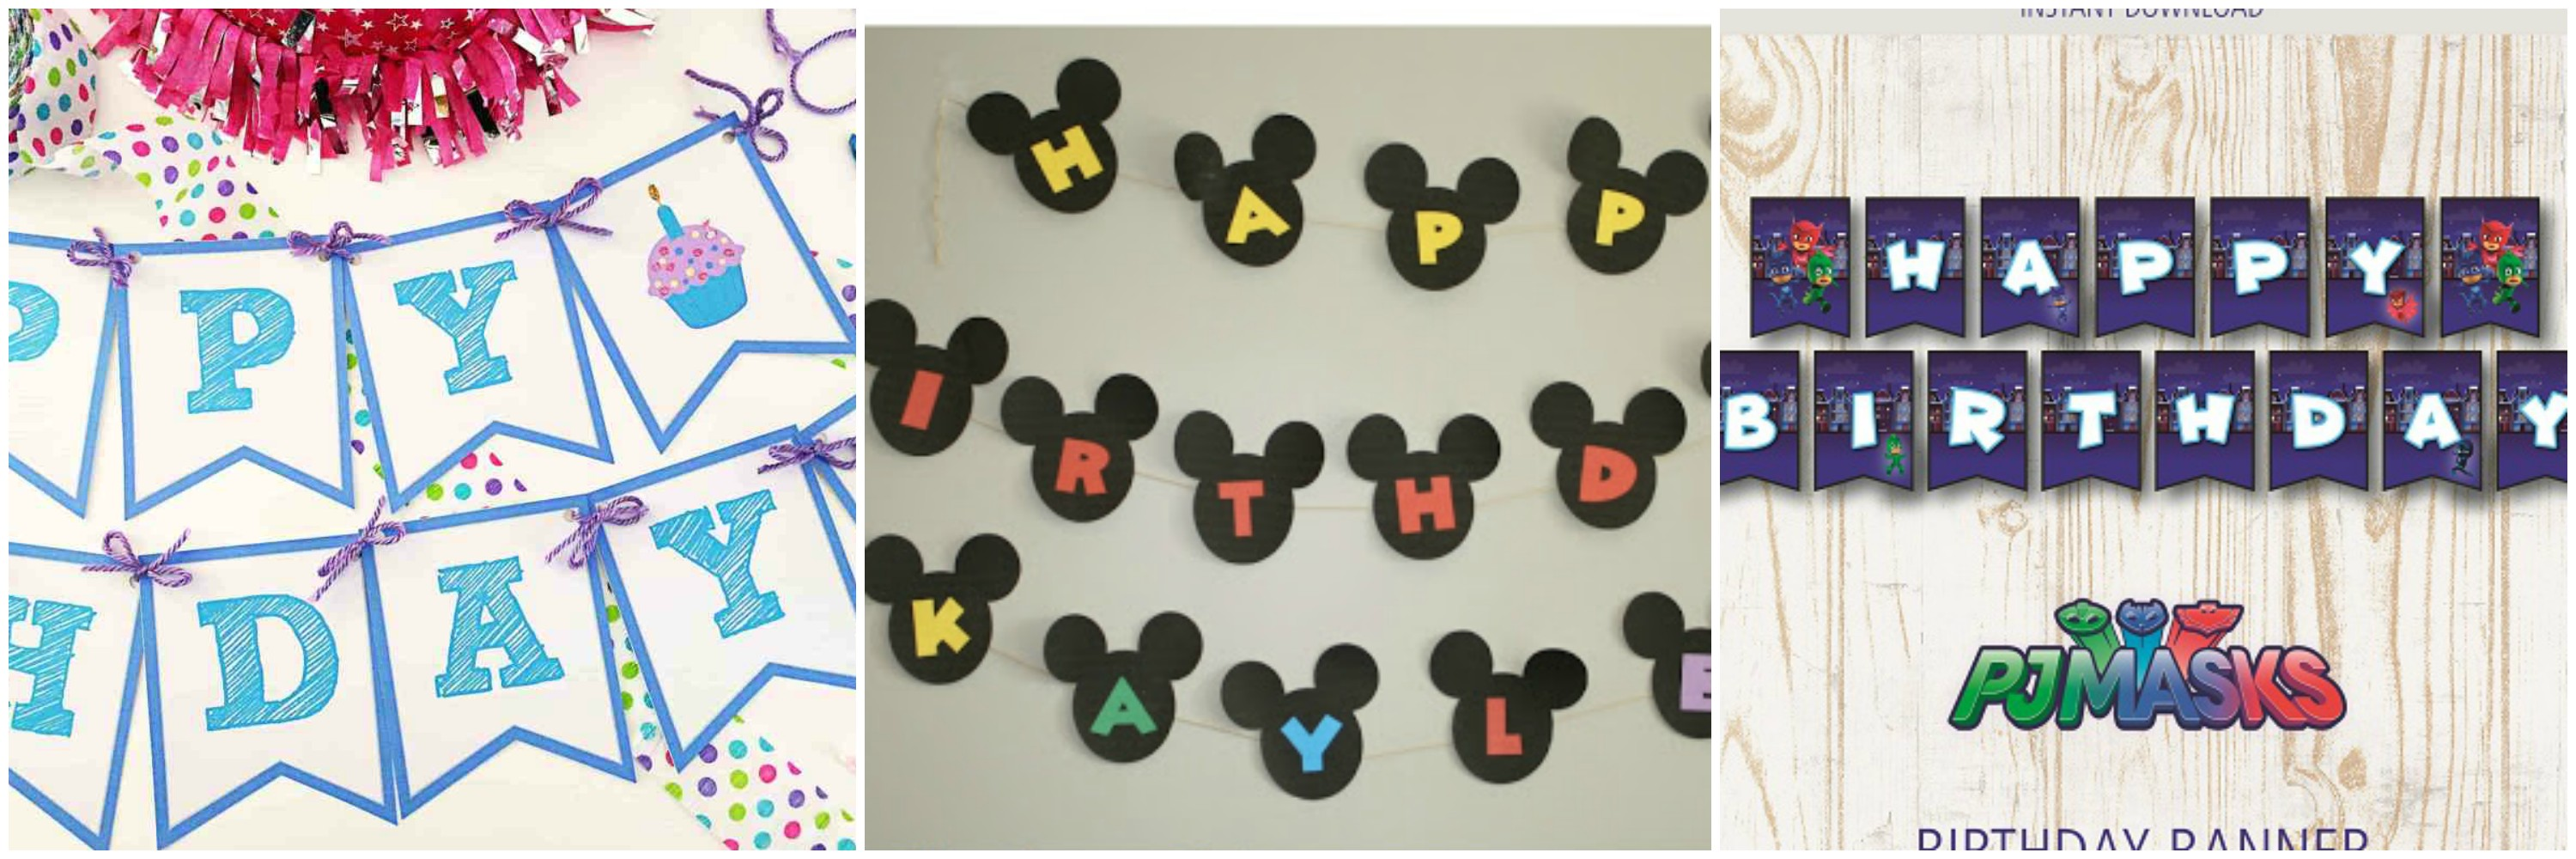 free birthday party printable banners